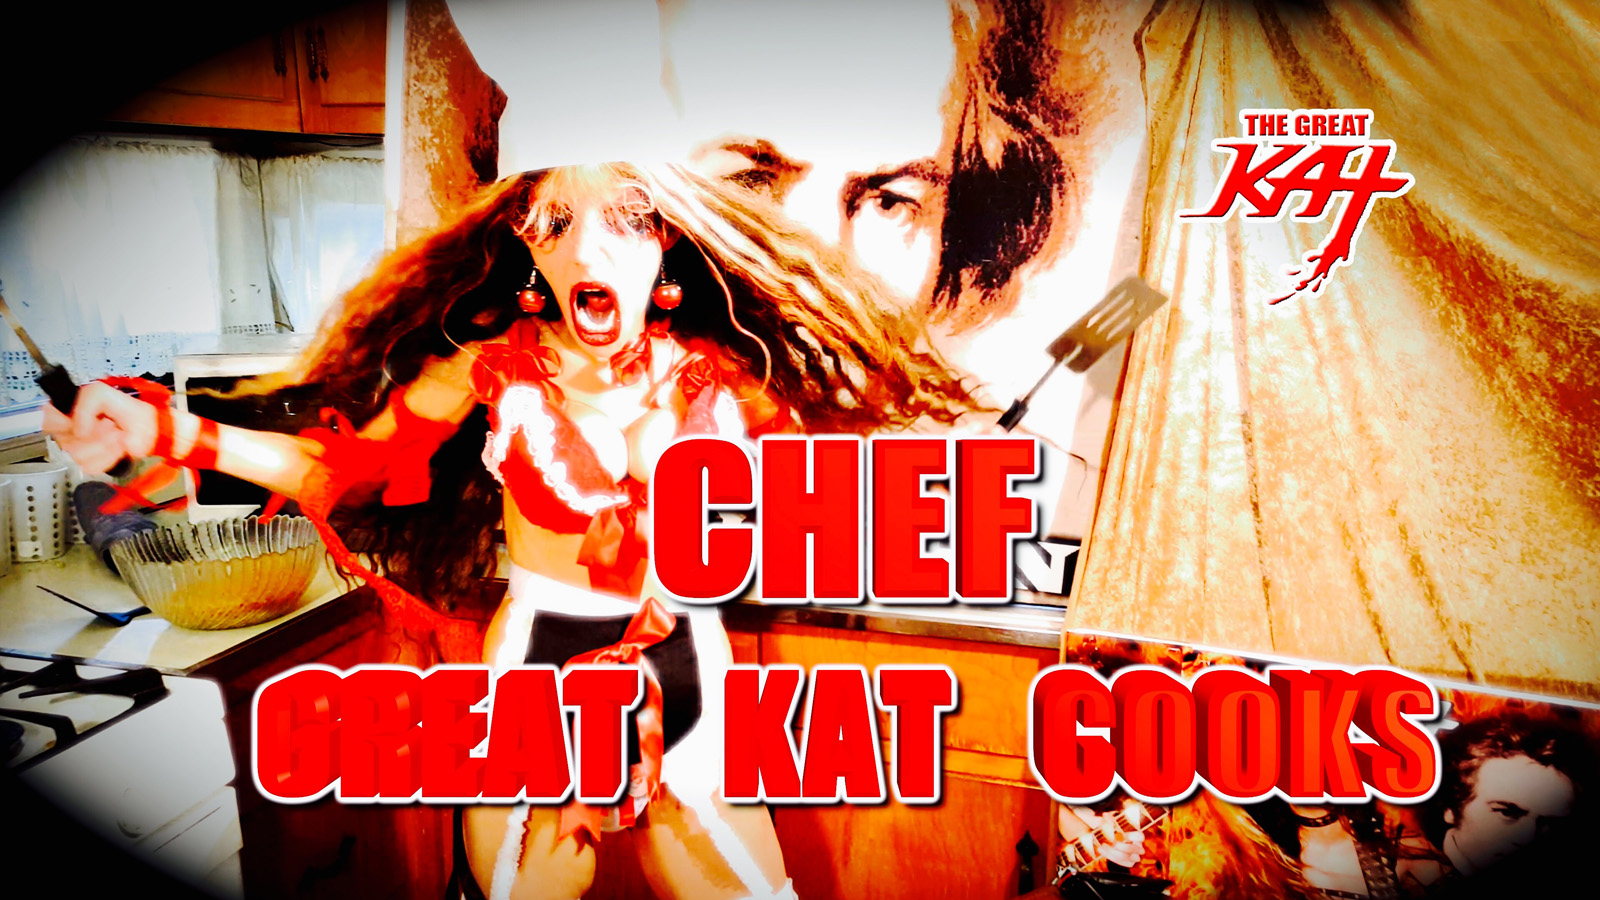 CHEF GREAT KAT COOKS!